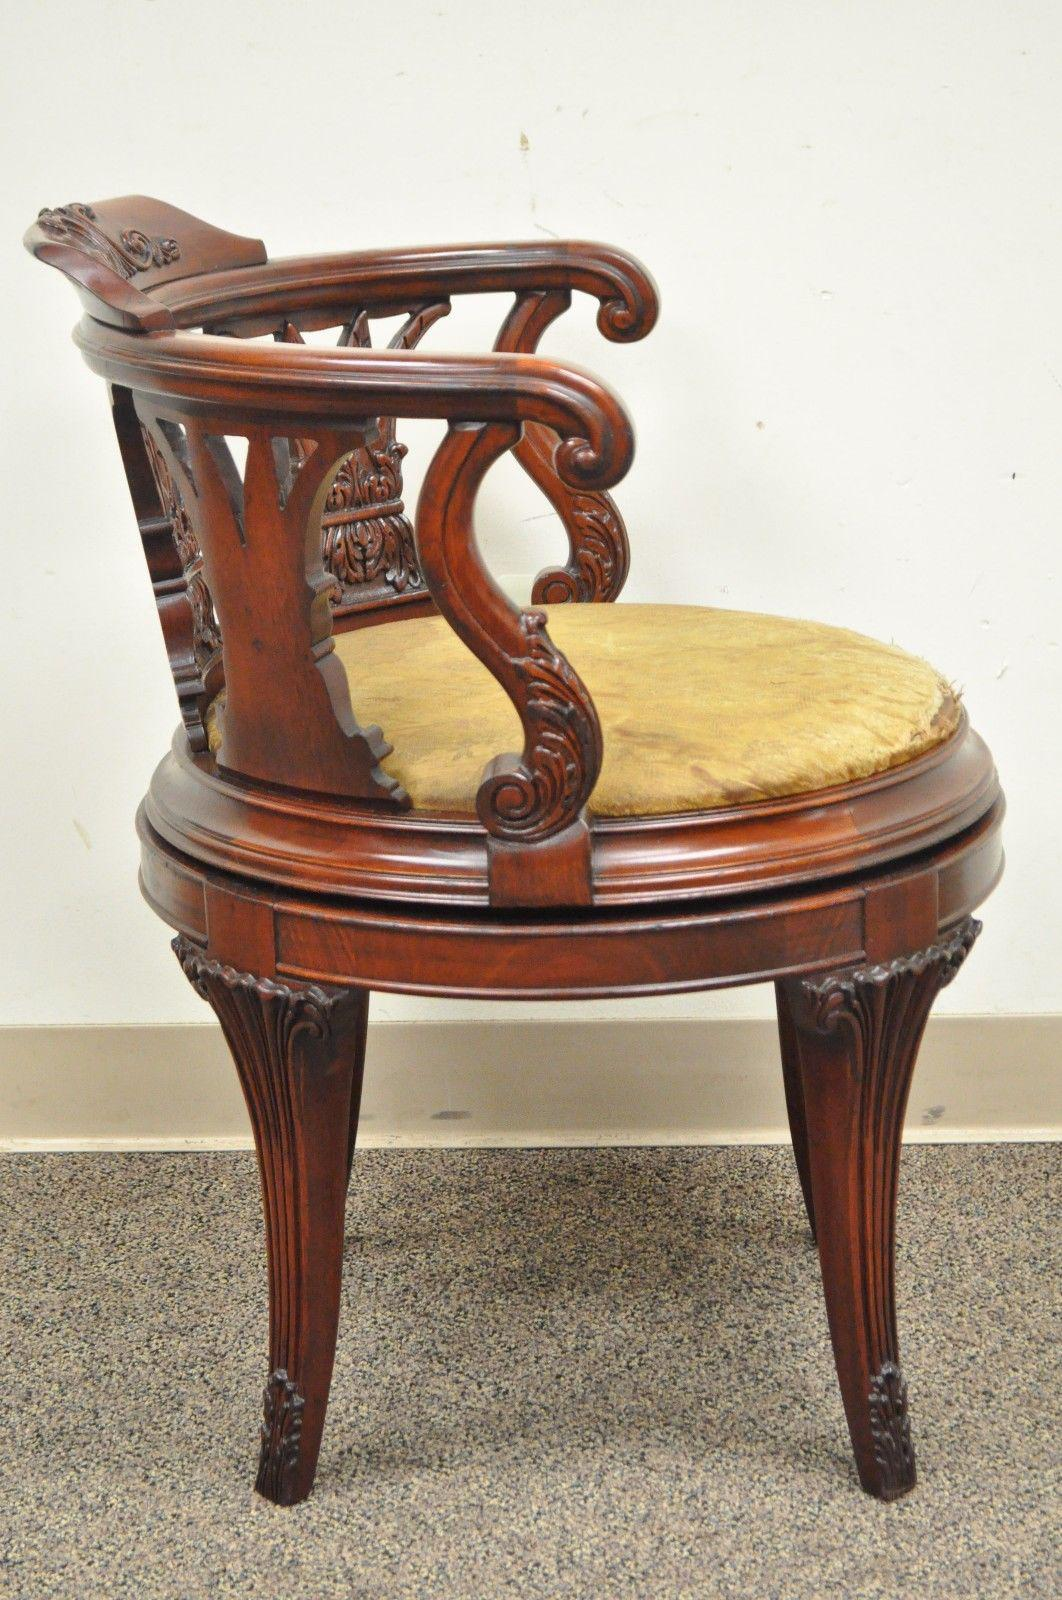 Antique Regency Style Carved Solid Mahogany Wheat Sheaf Swivel Vanity Chair  Vintage   Image 3 Of